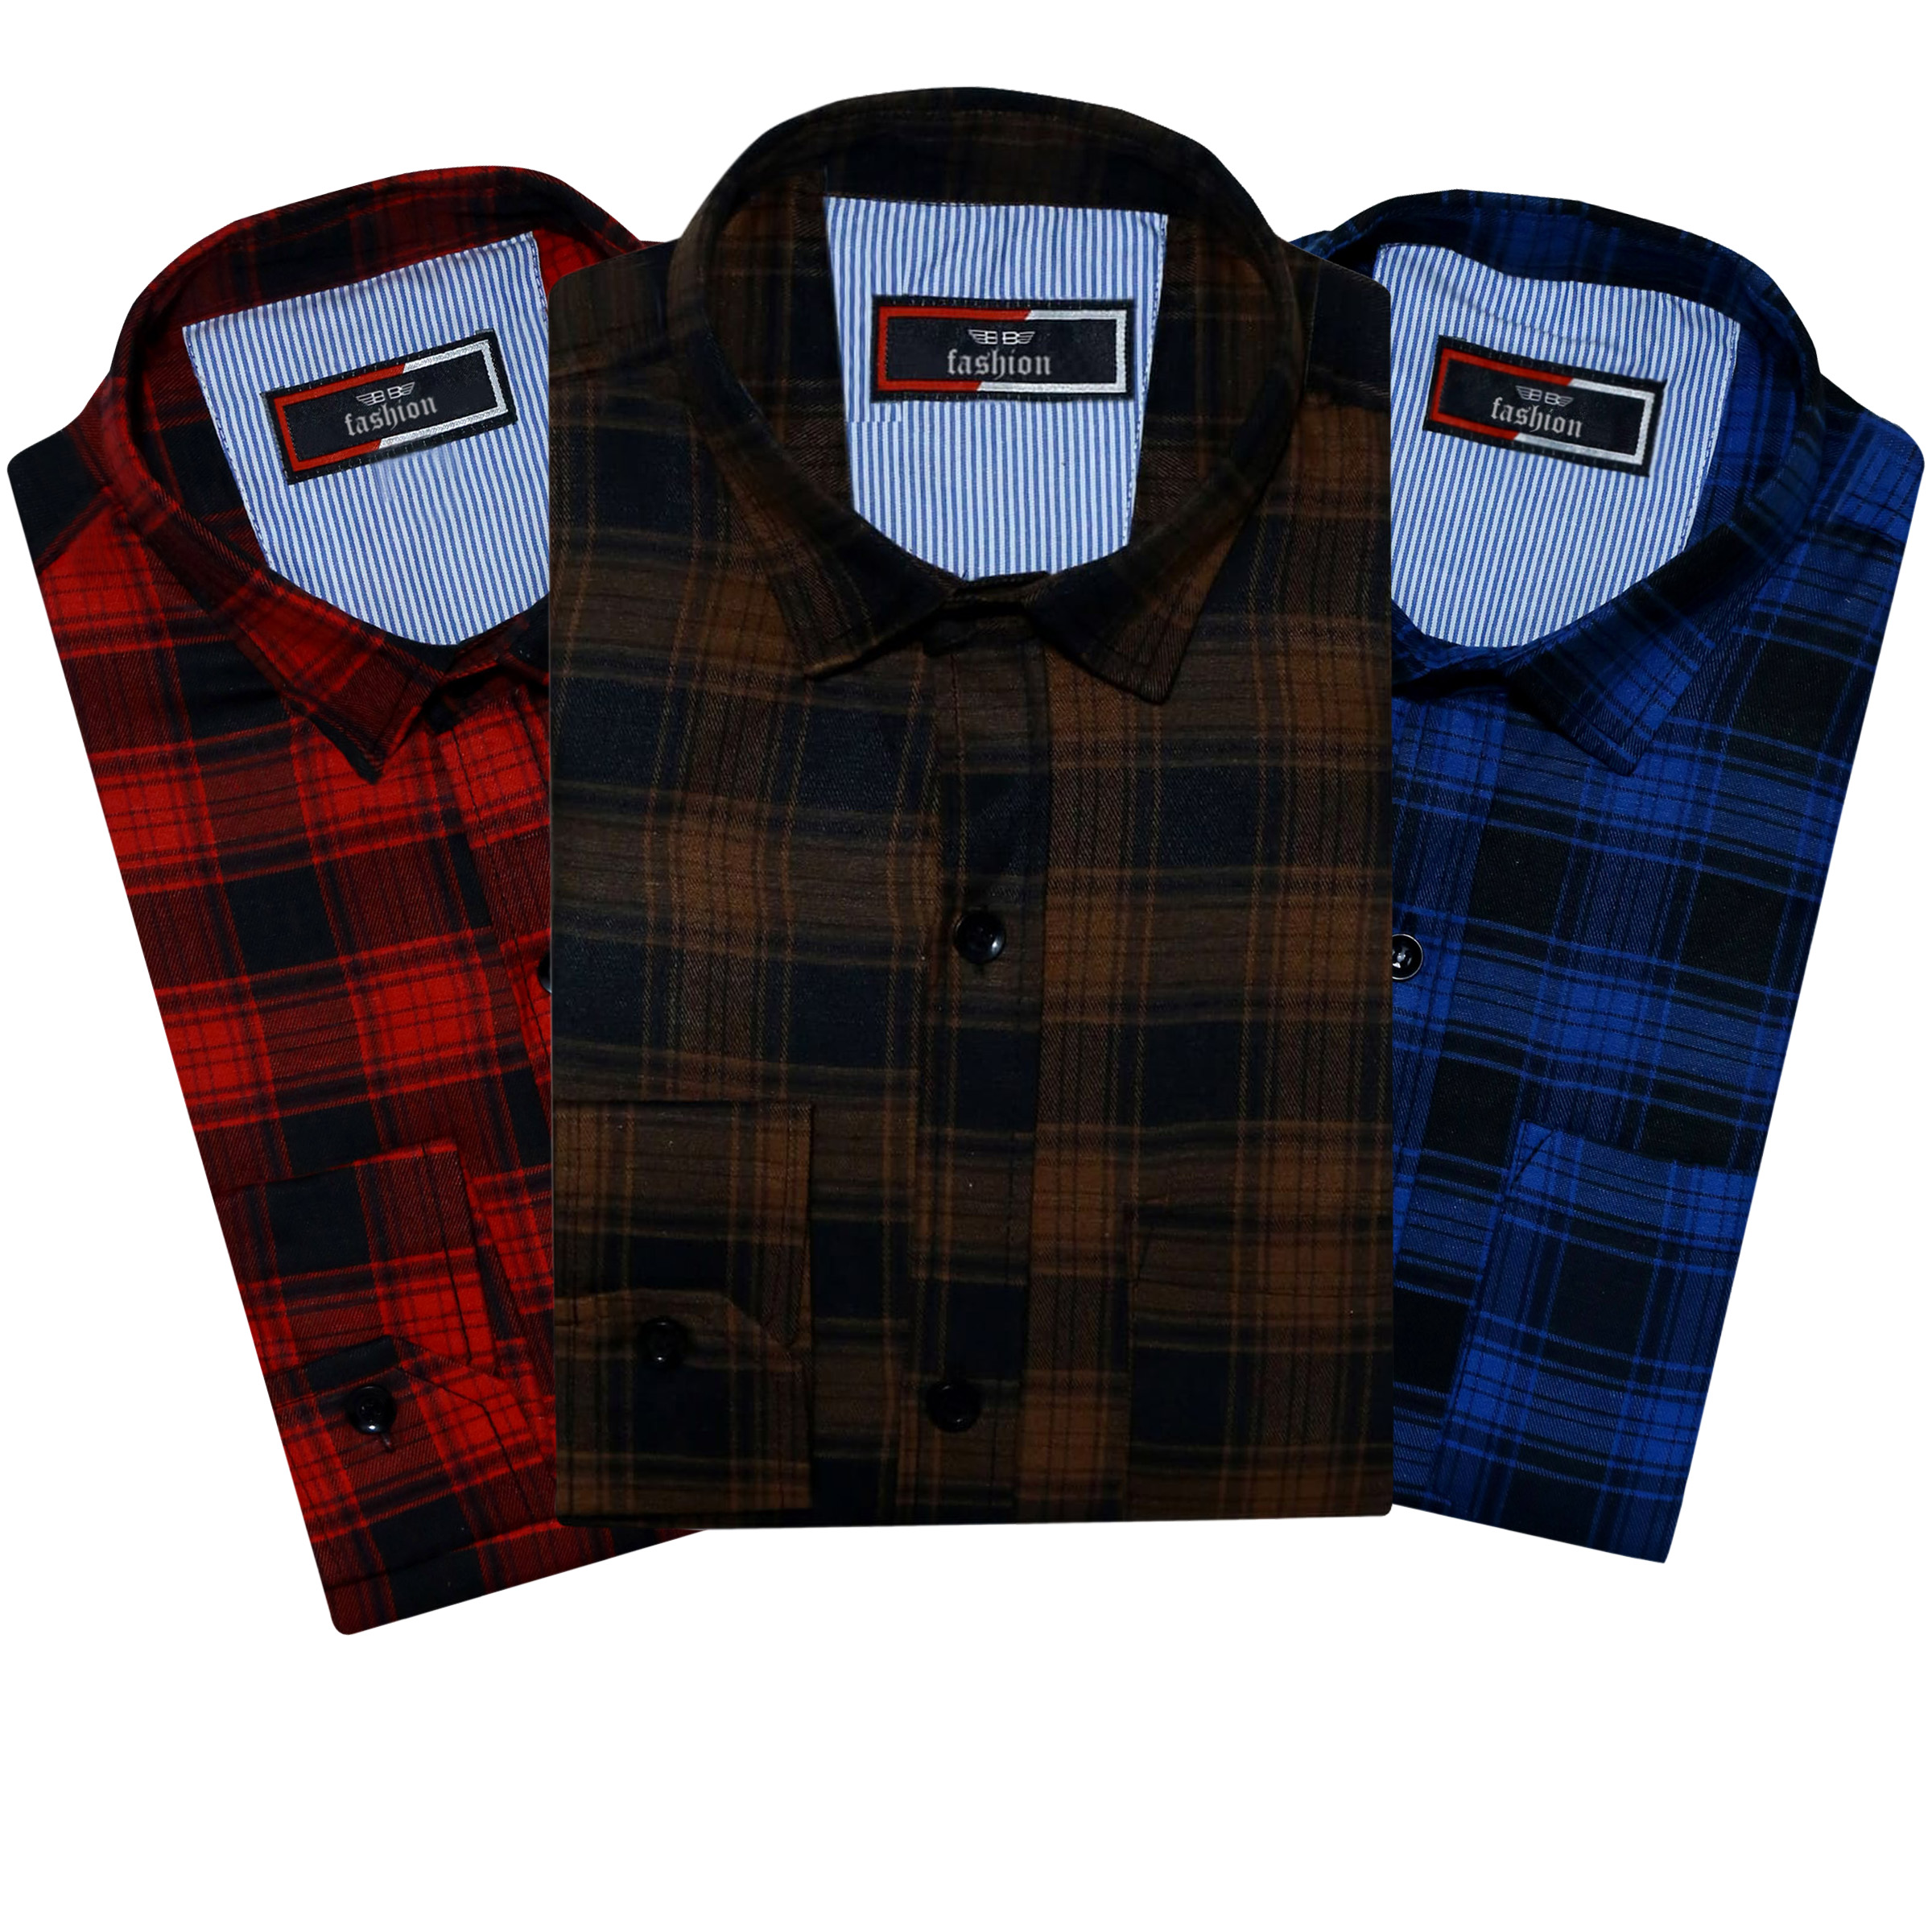 Spain Style Men Checkered Casual Slim Fit Multicolor Shirts   Pack of 3